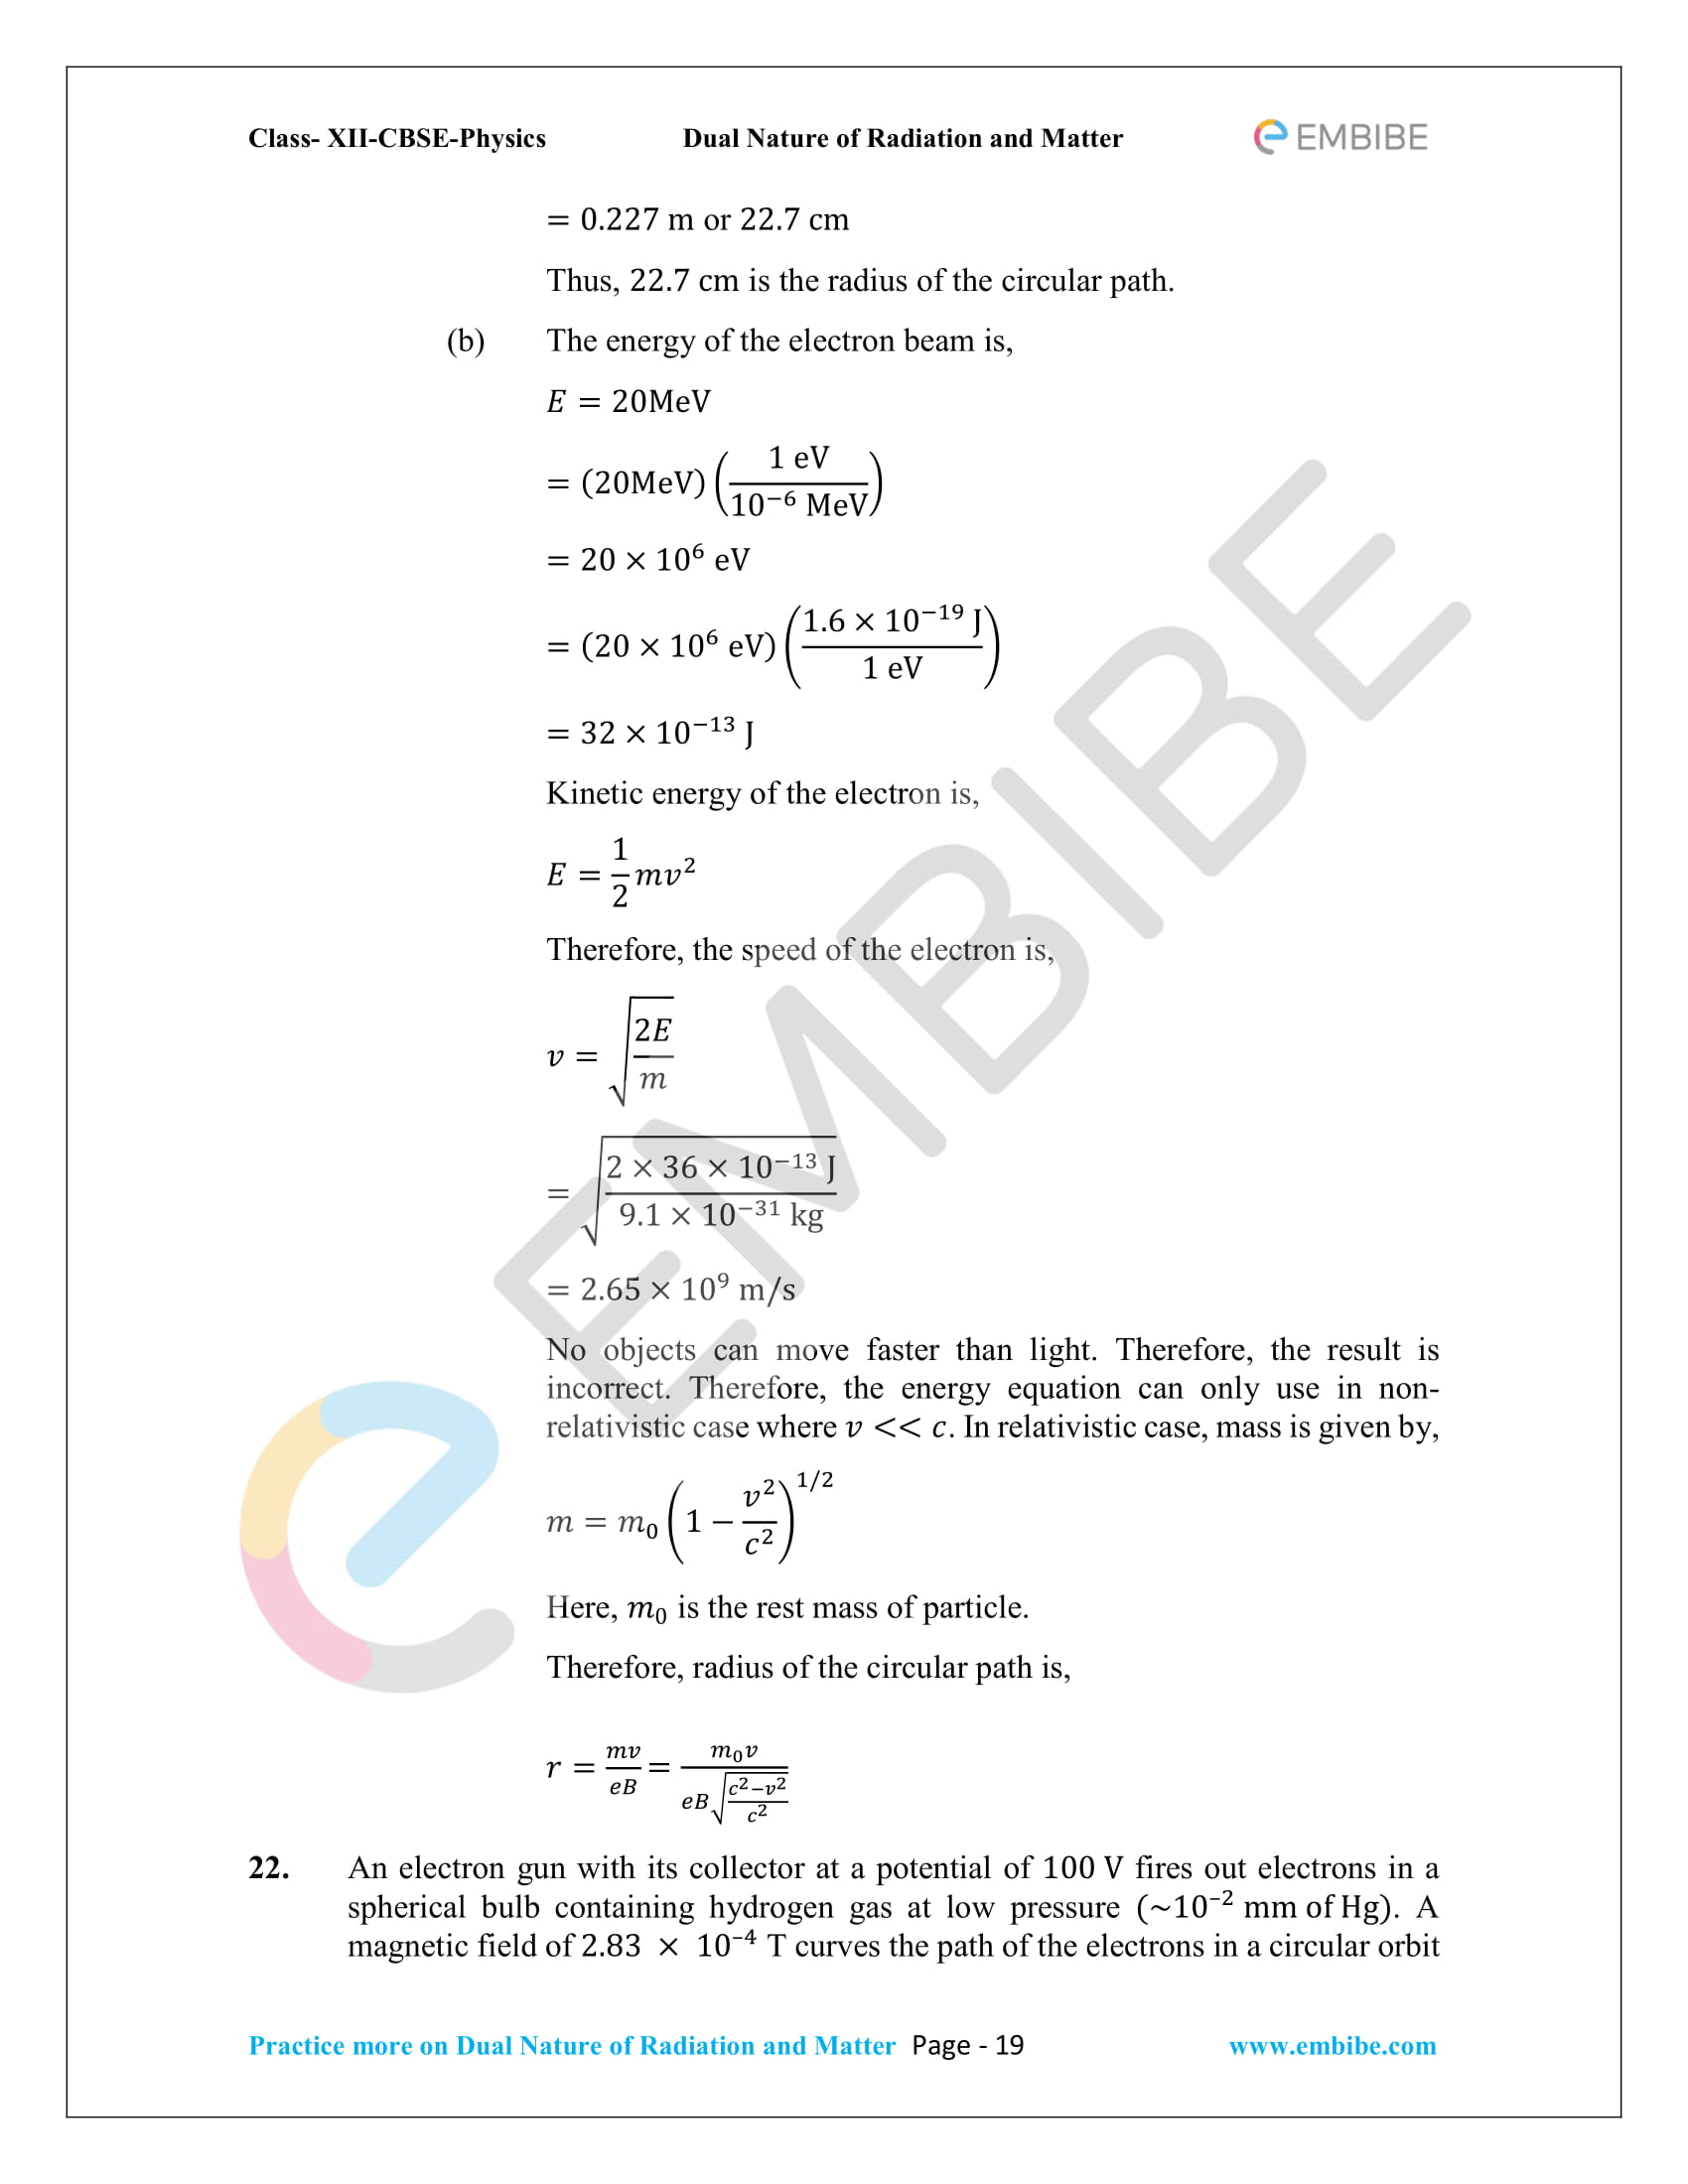 NCERT_Grade 12_Physics_Ch_11_Dual Nature of Radiation and Matter-19